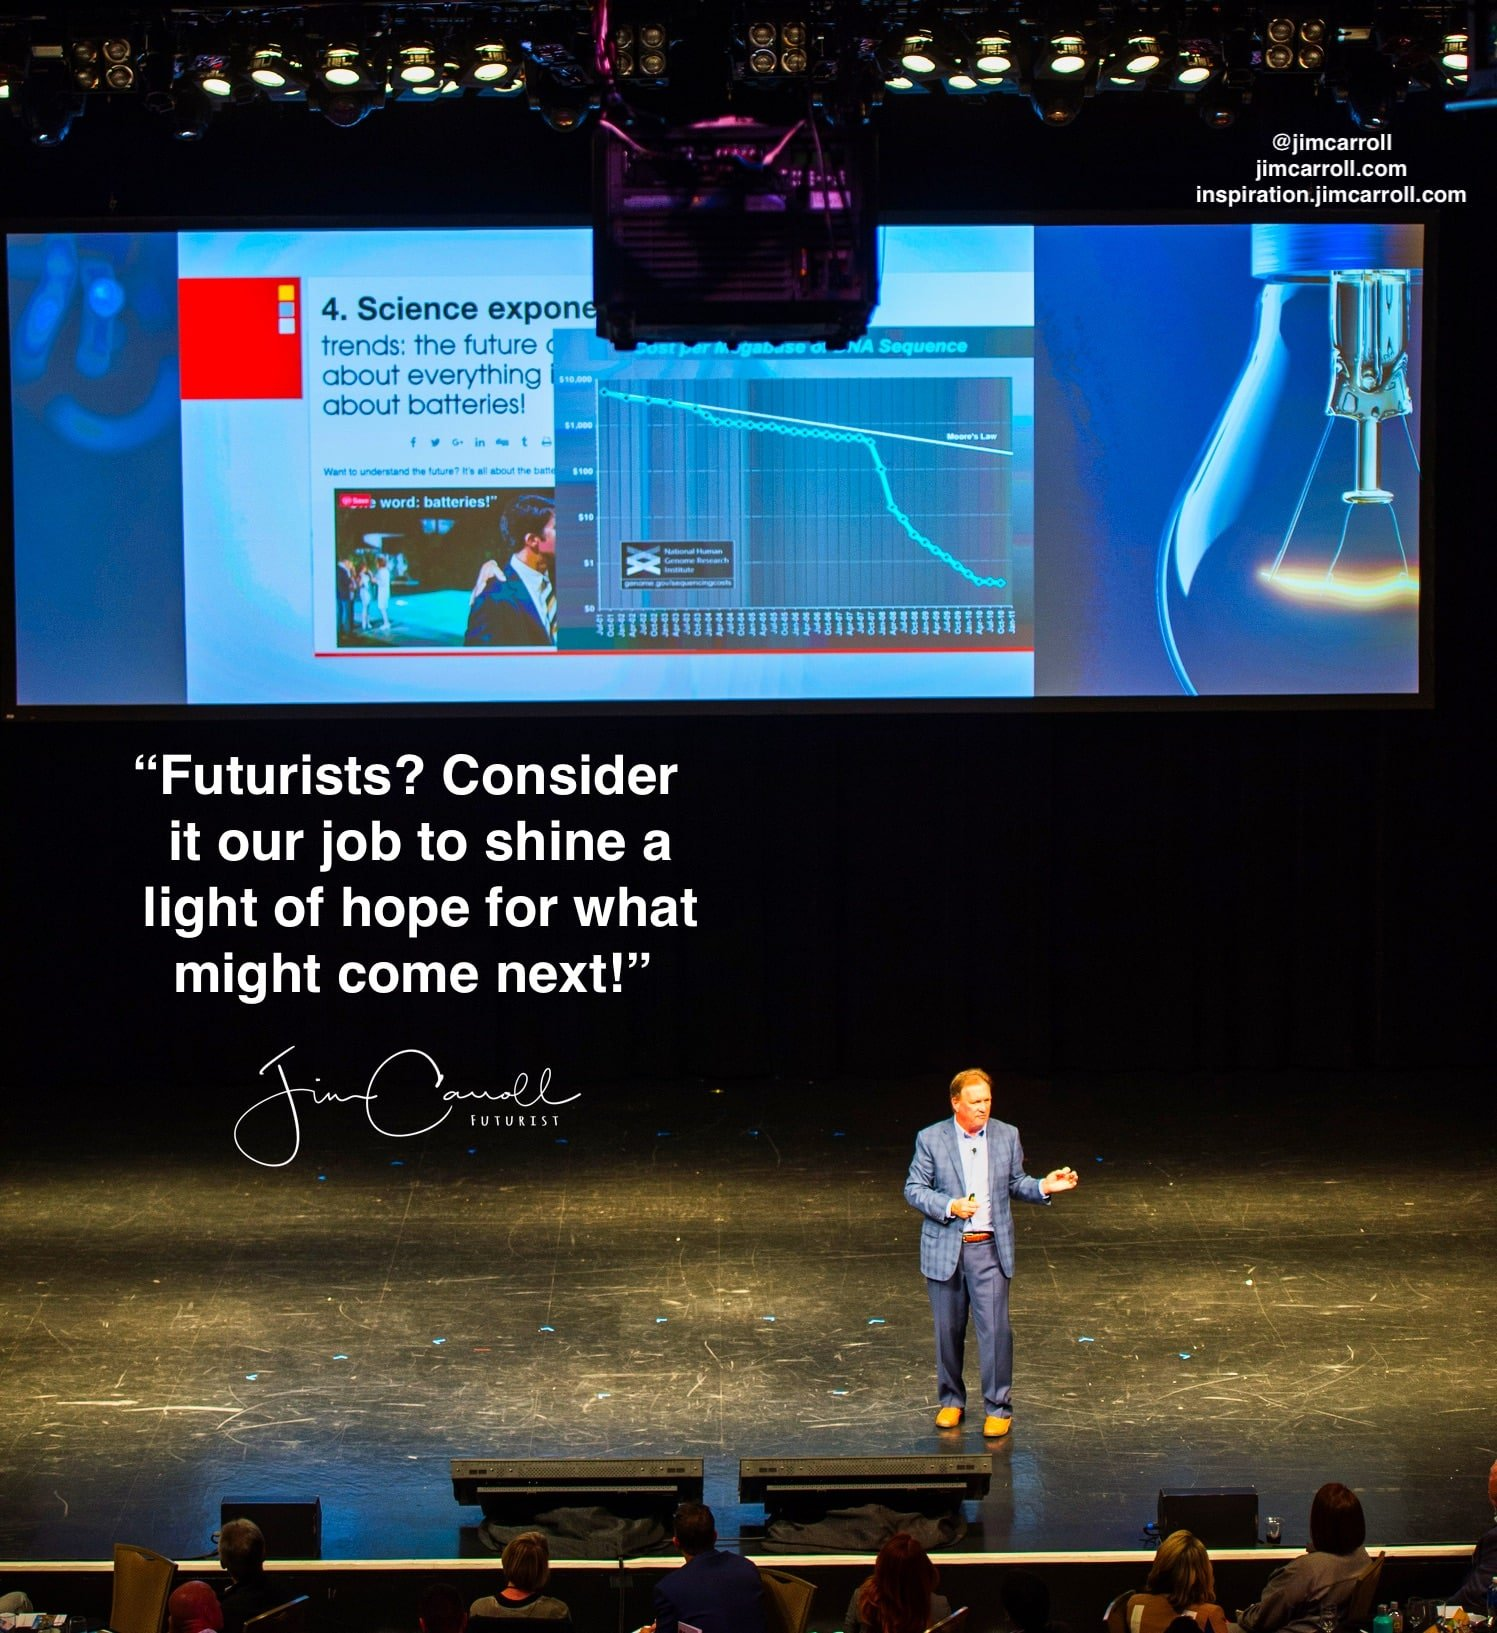 """Daily Inspiration: """"Futurists? Consider it our job to shine a light of hope for what might come next!"""""""